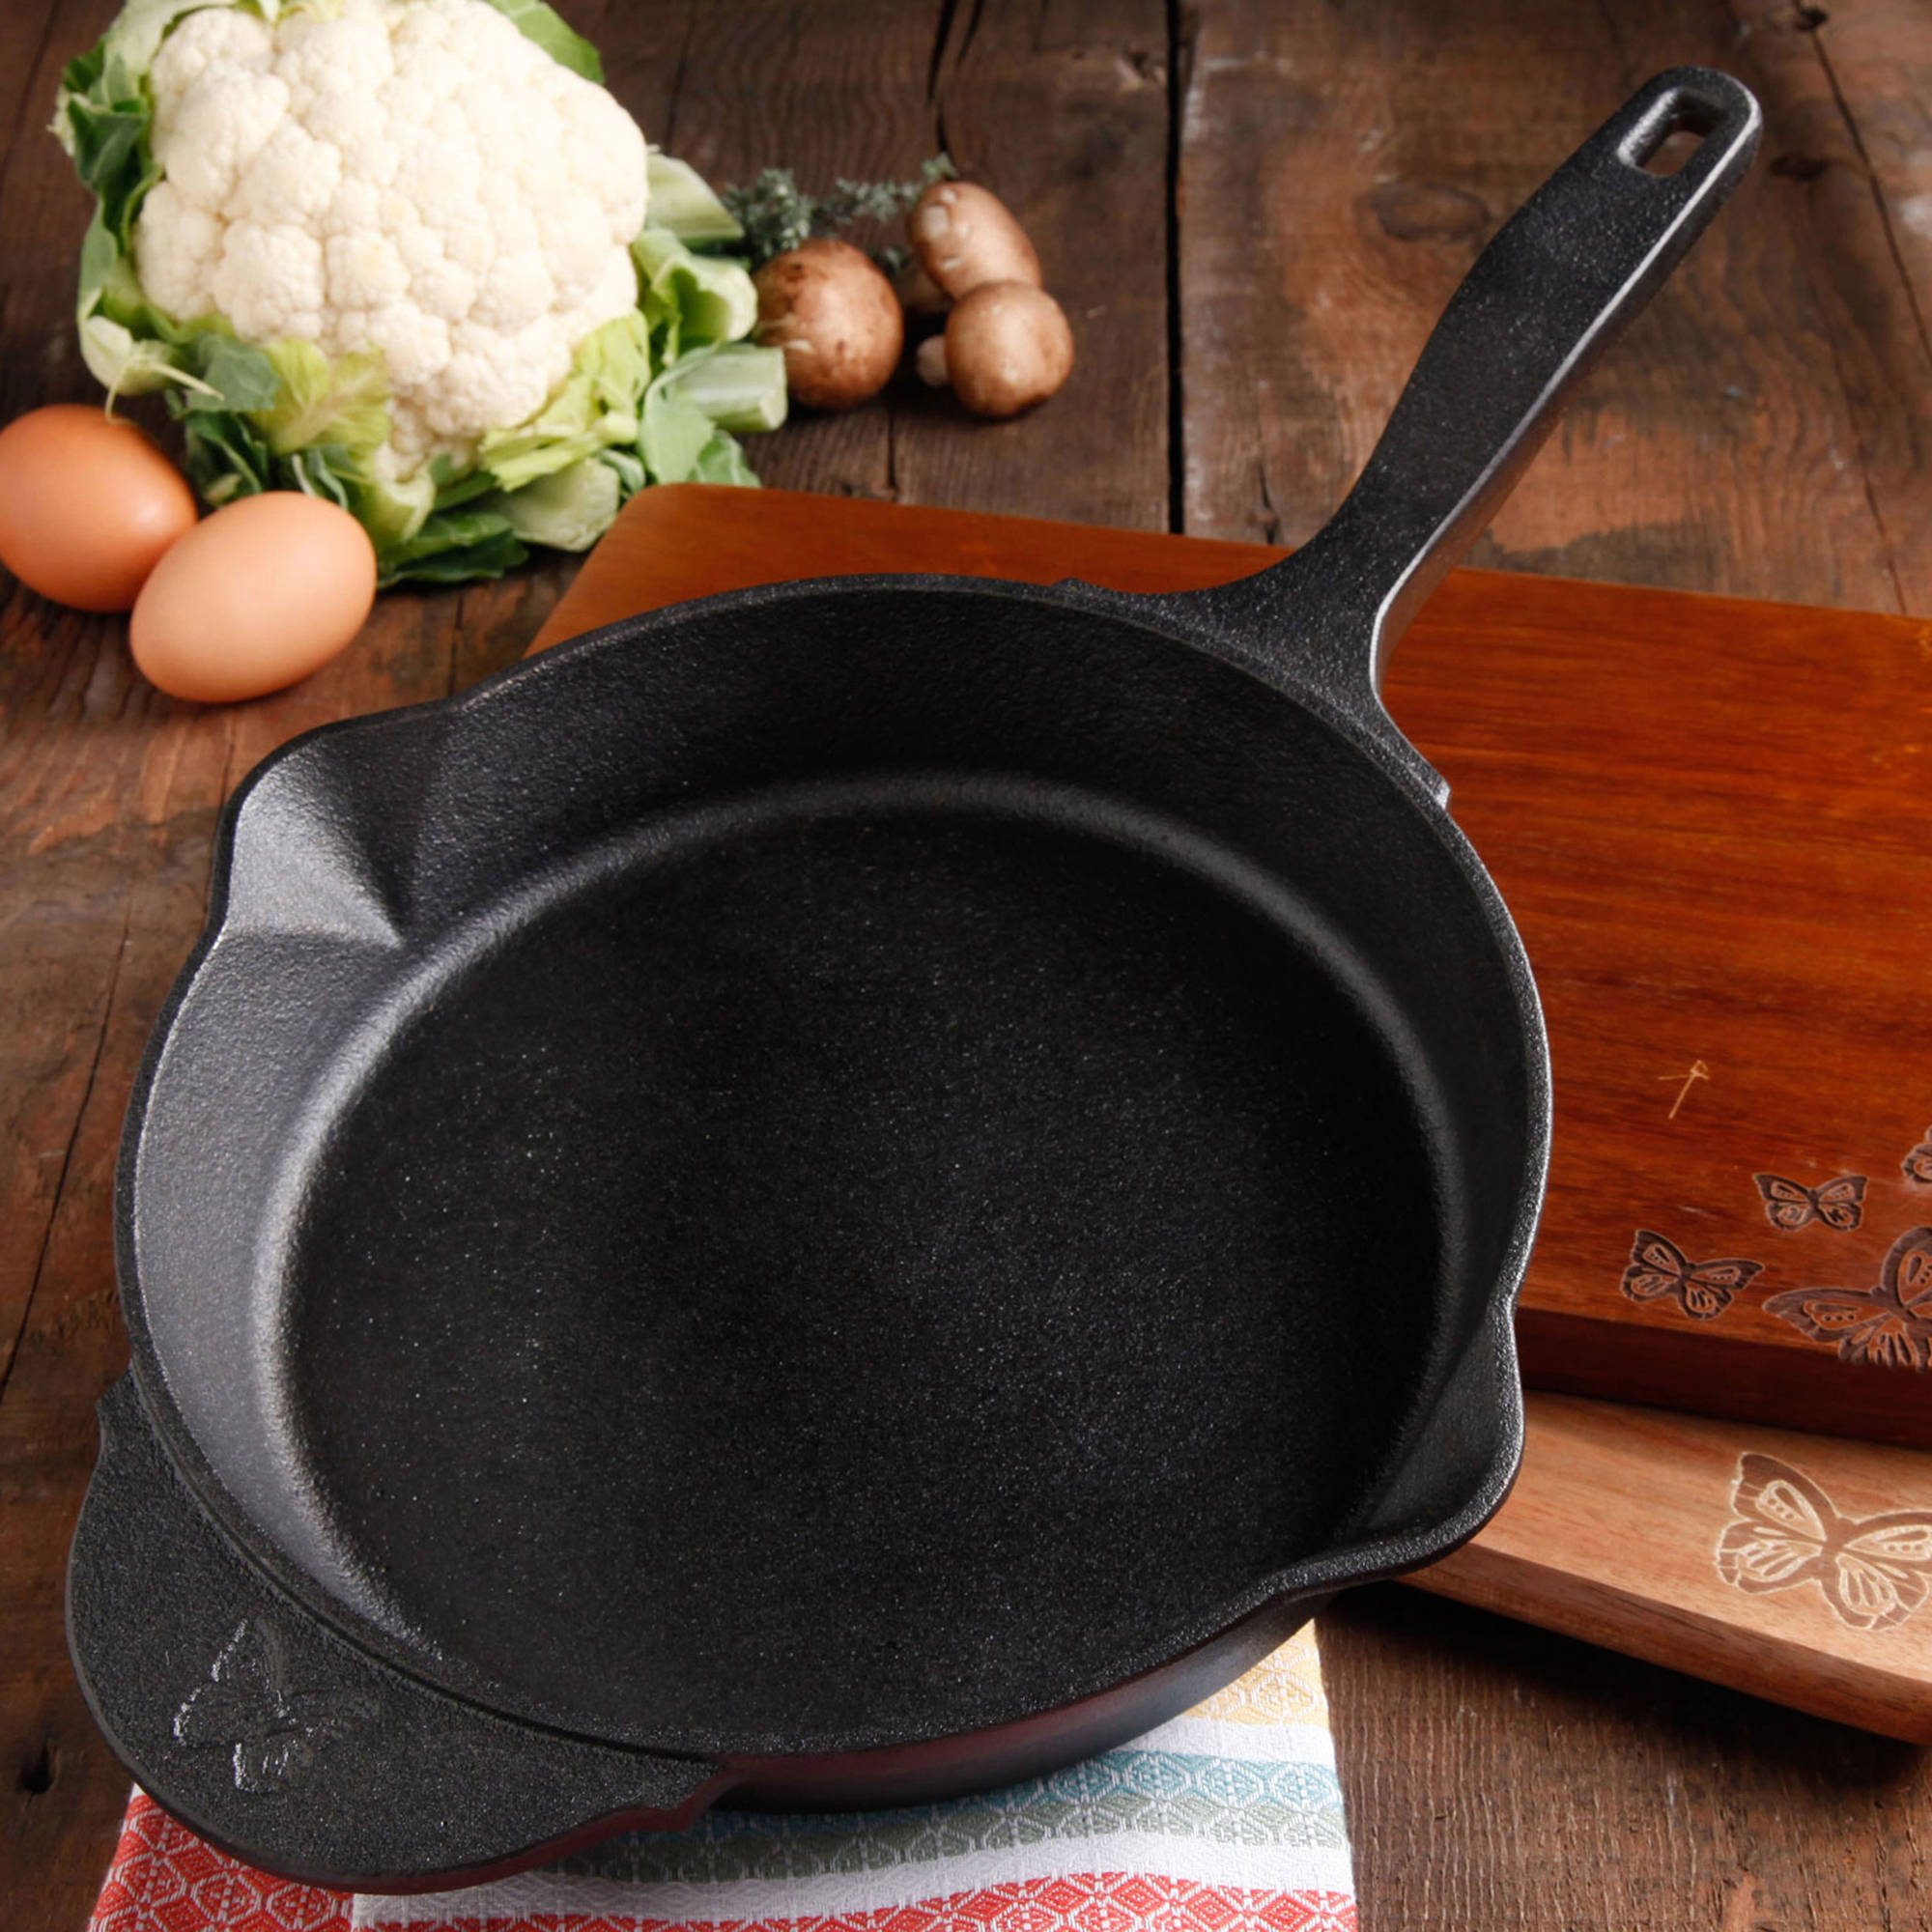 The Pioneer Woman Preseason Cast Iron Skillet